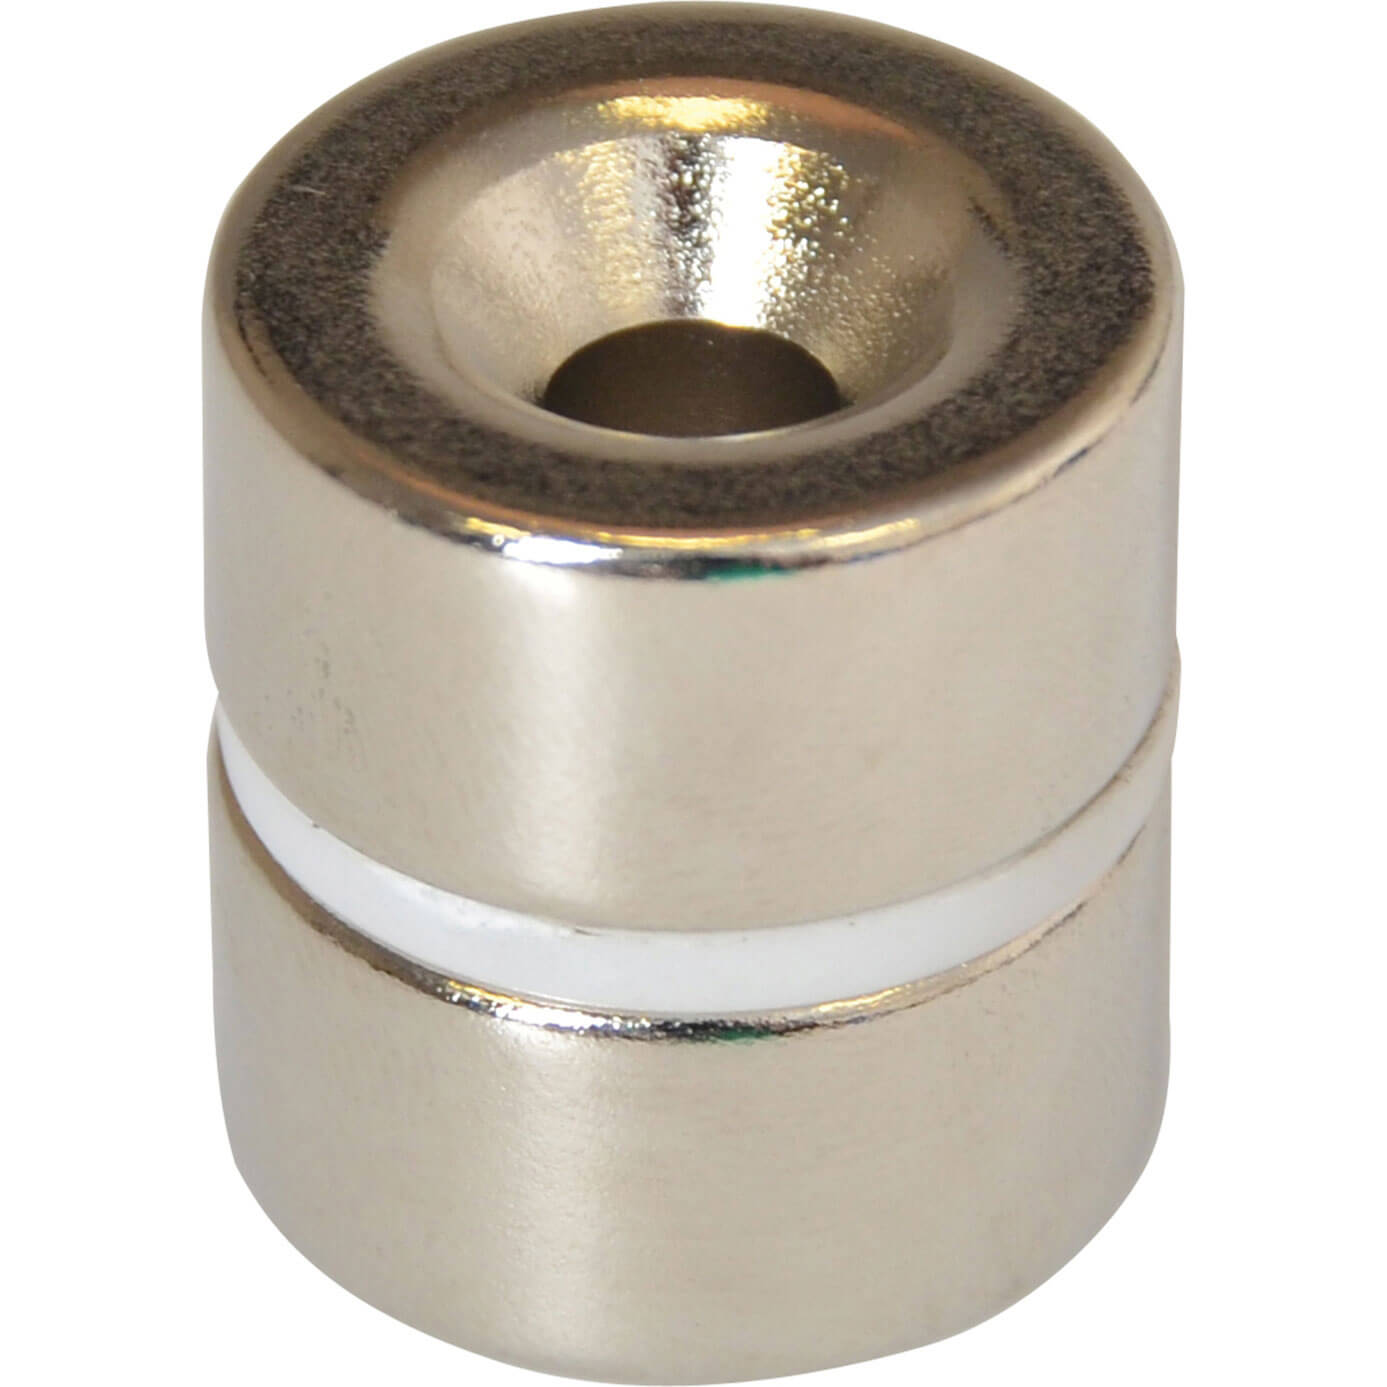 Image of E Magnet 315 Countersunk Magnets 20mm Pack of 2